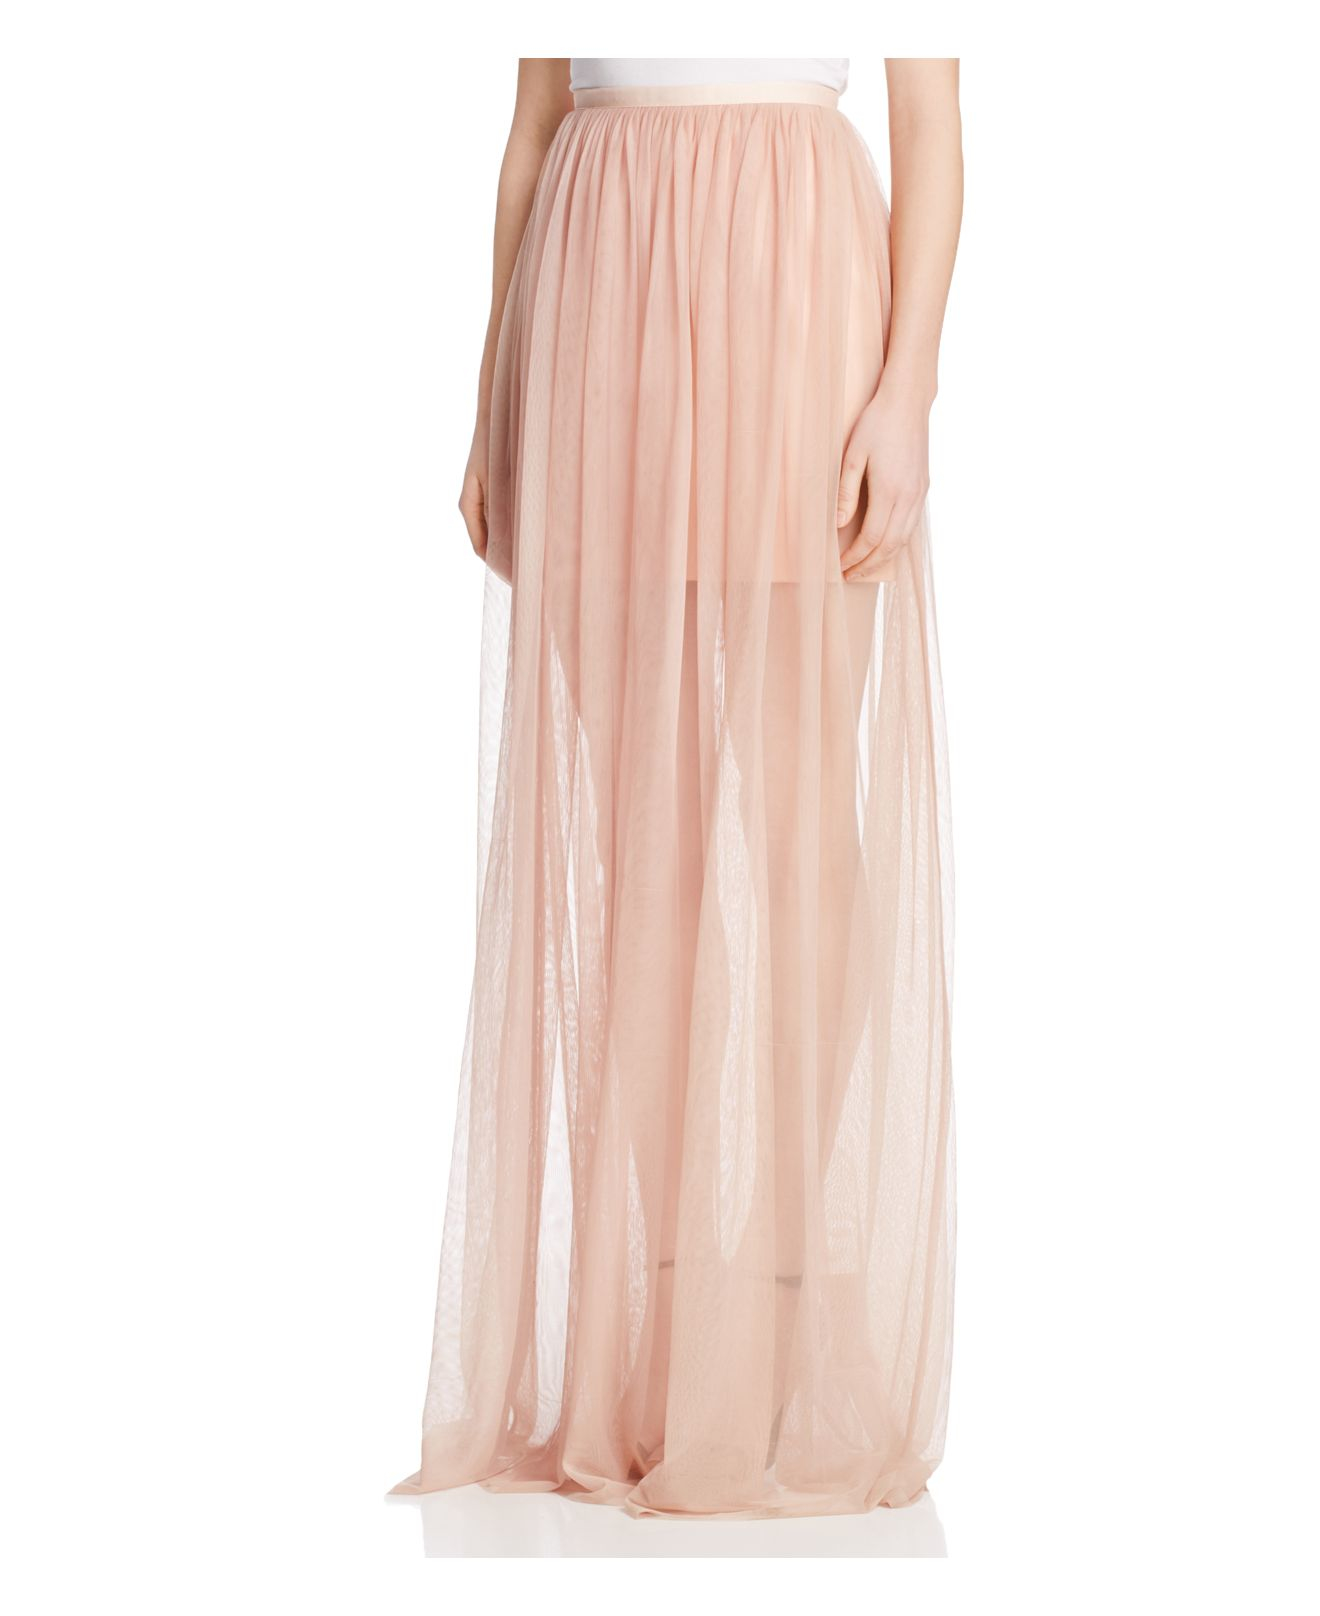 keepsake white lies tulle illusion maxi skirt in pink